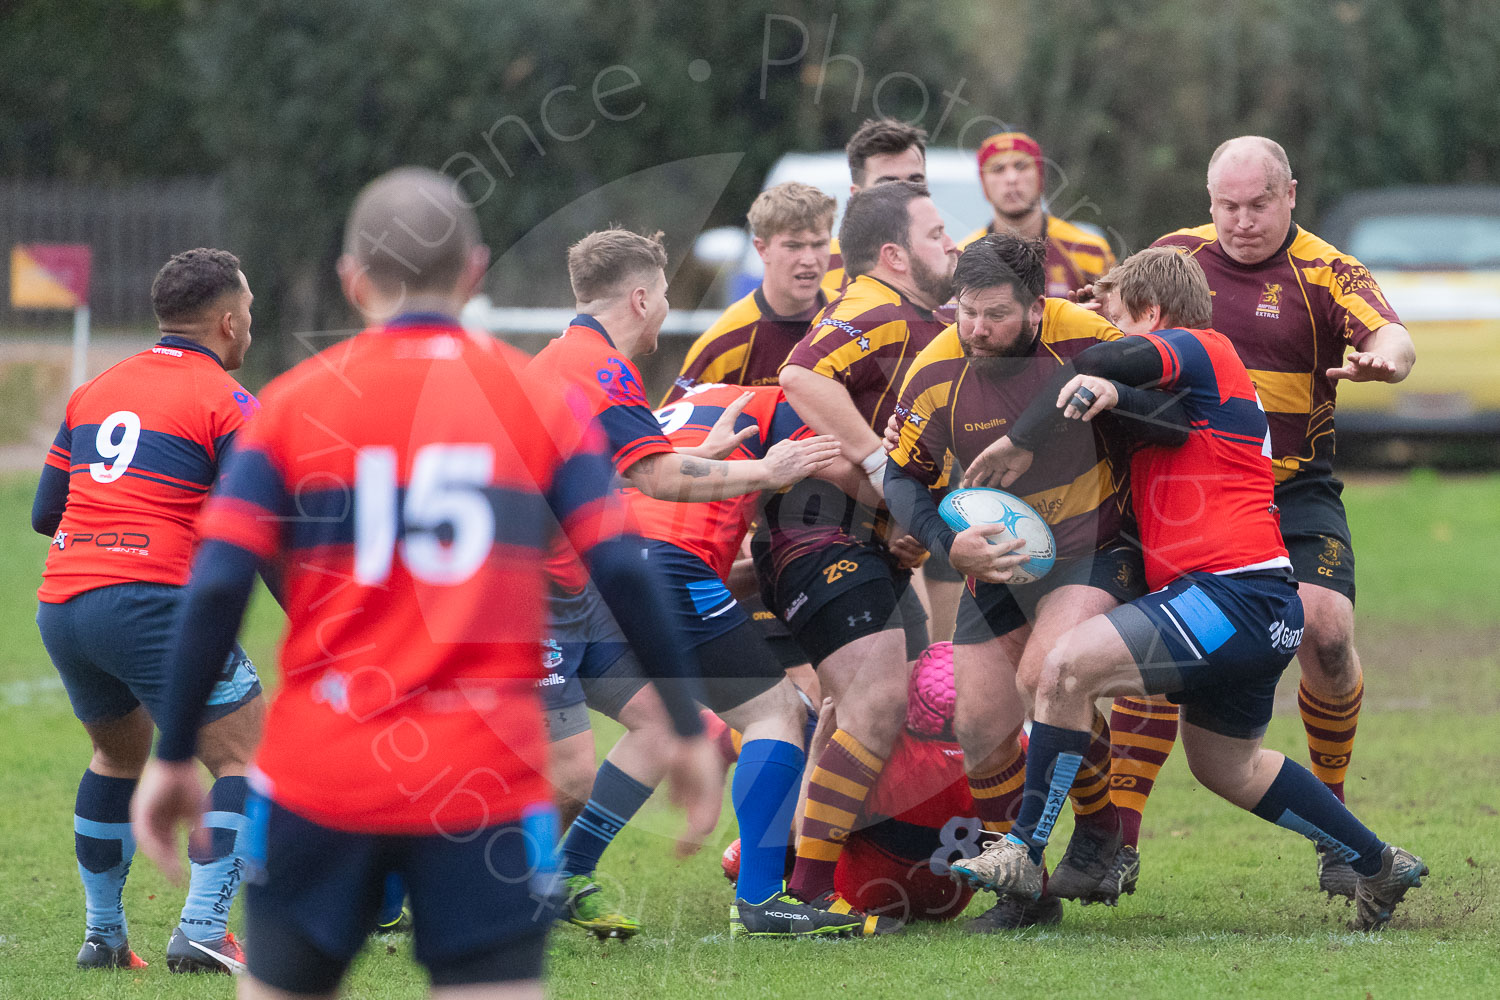 20181027 Amp Extras vs St Neots 2nd XV #2448